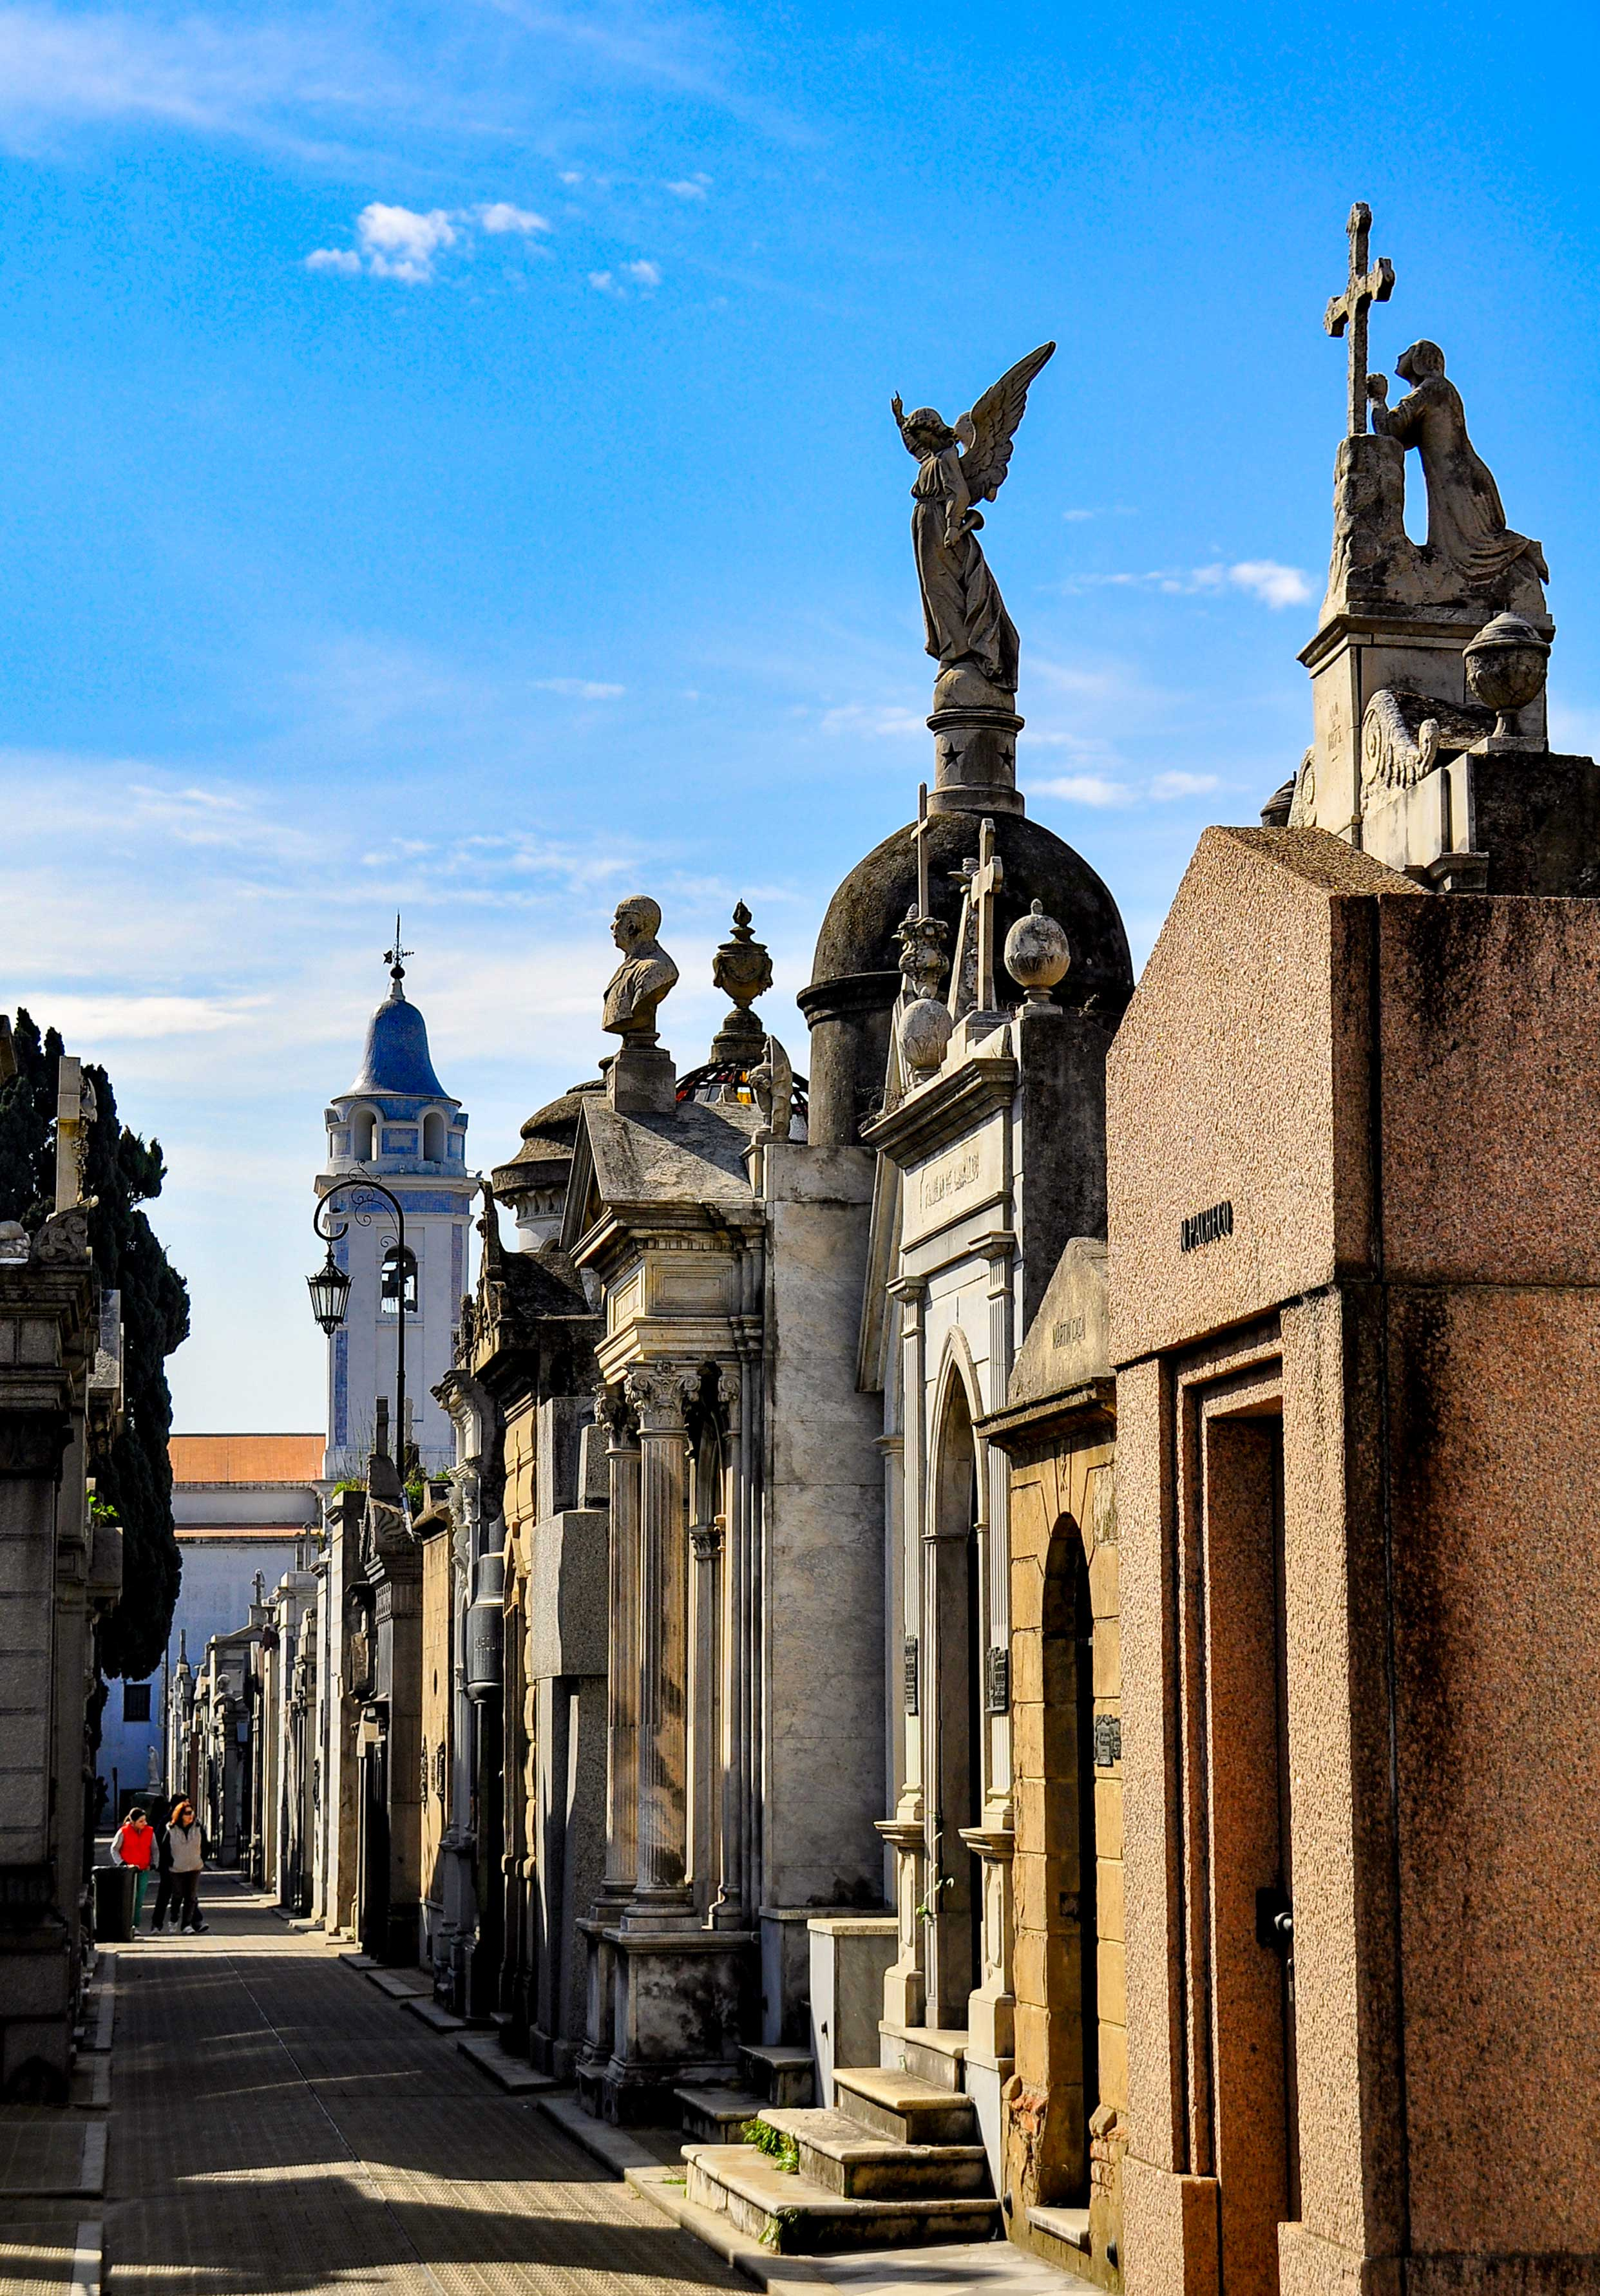 Some of the vaults at the La Recoleta Cemetery